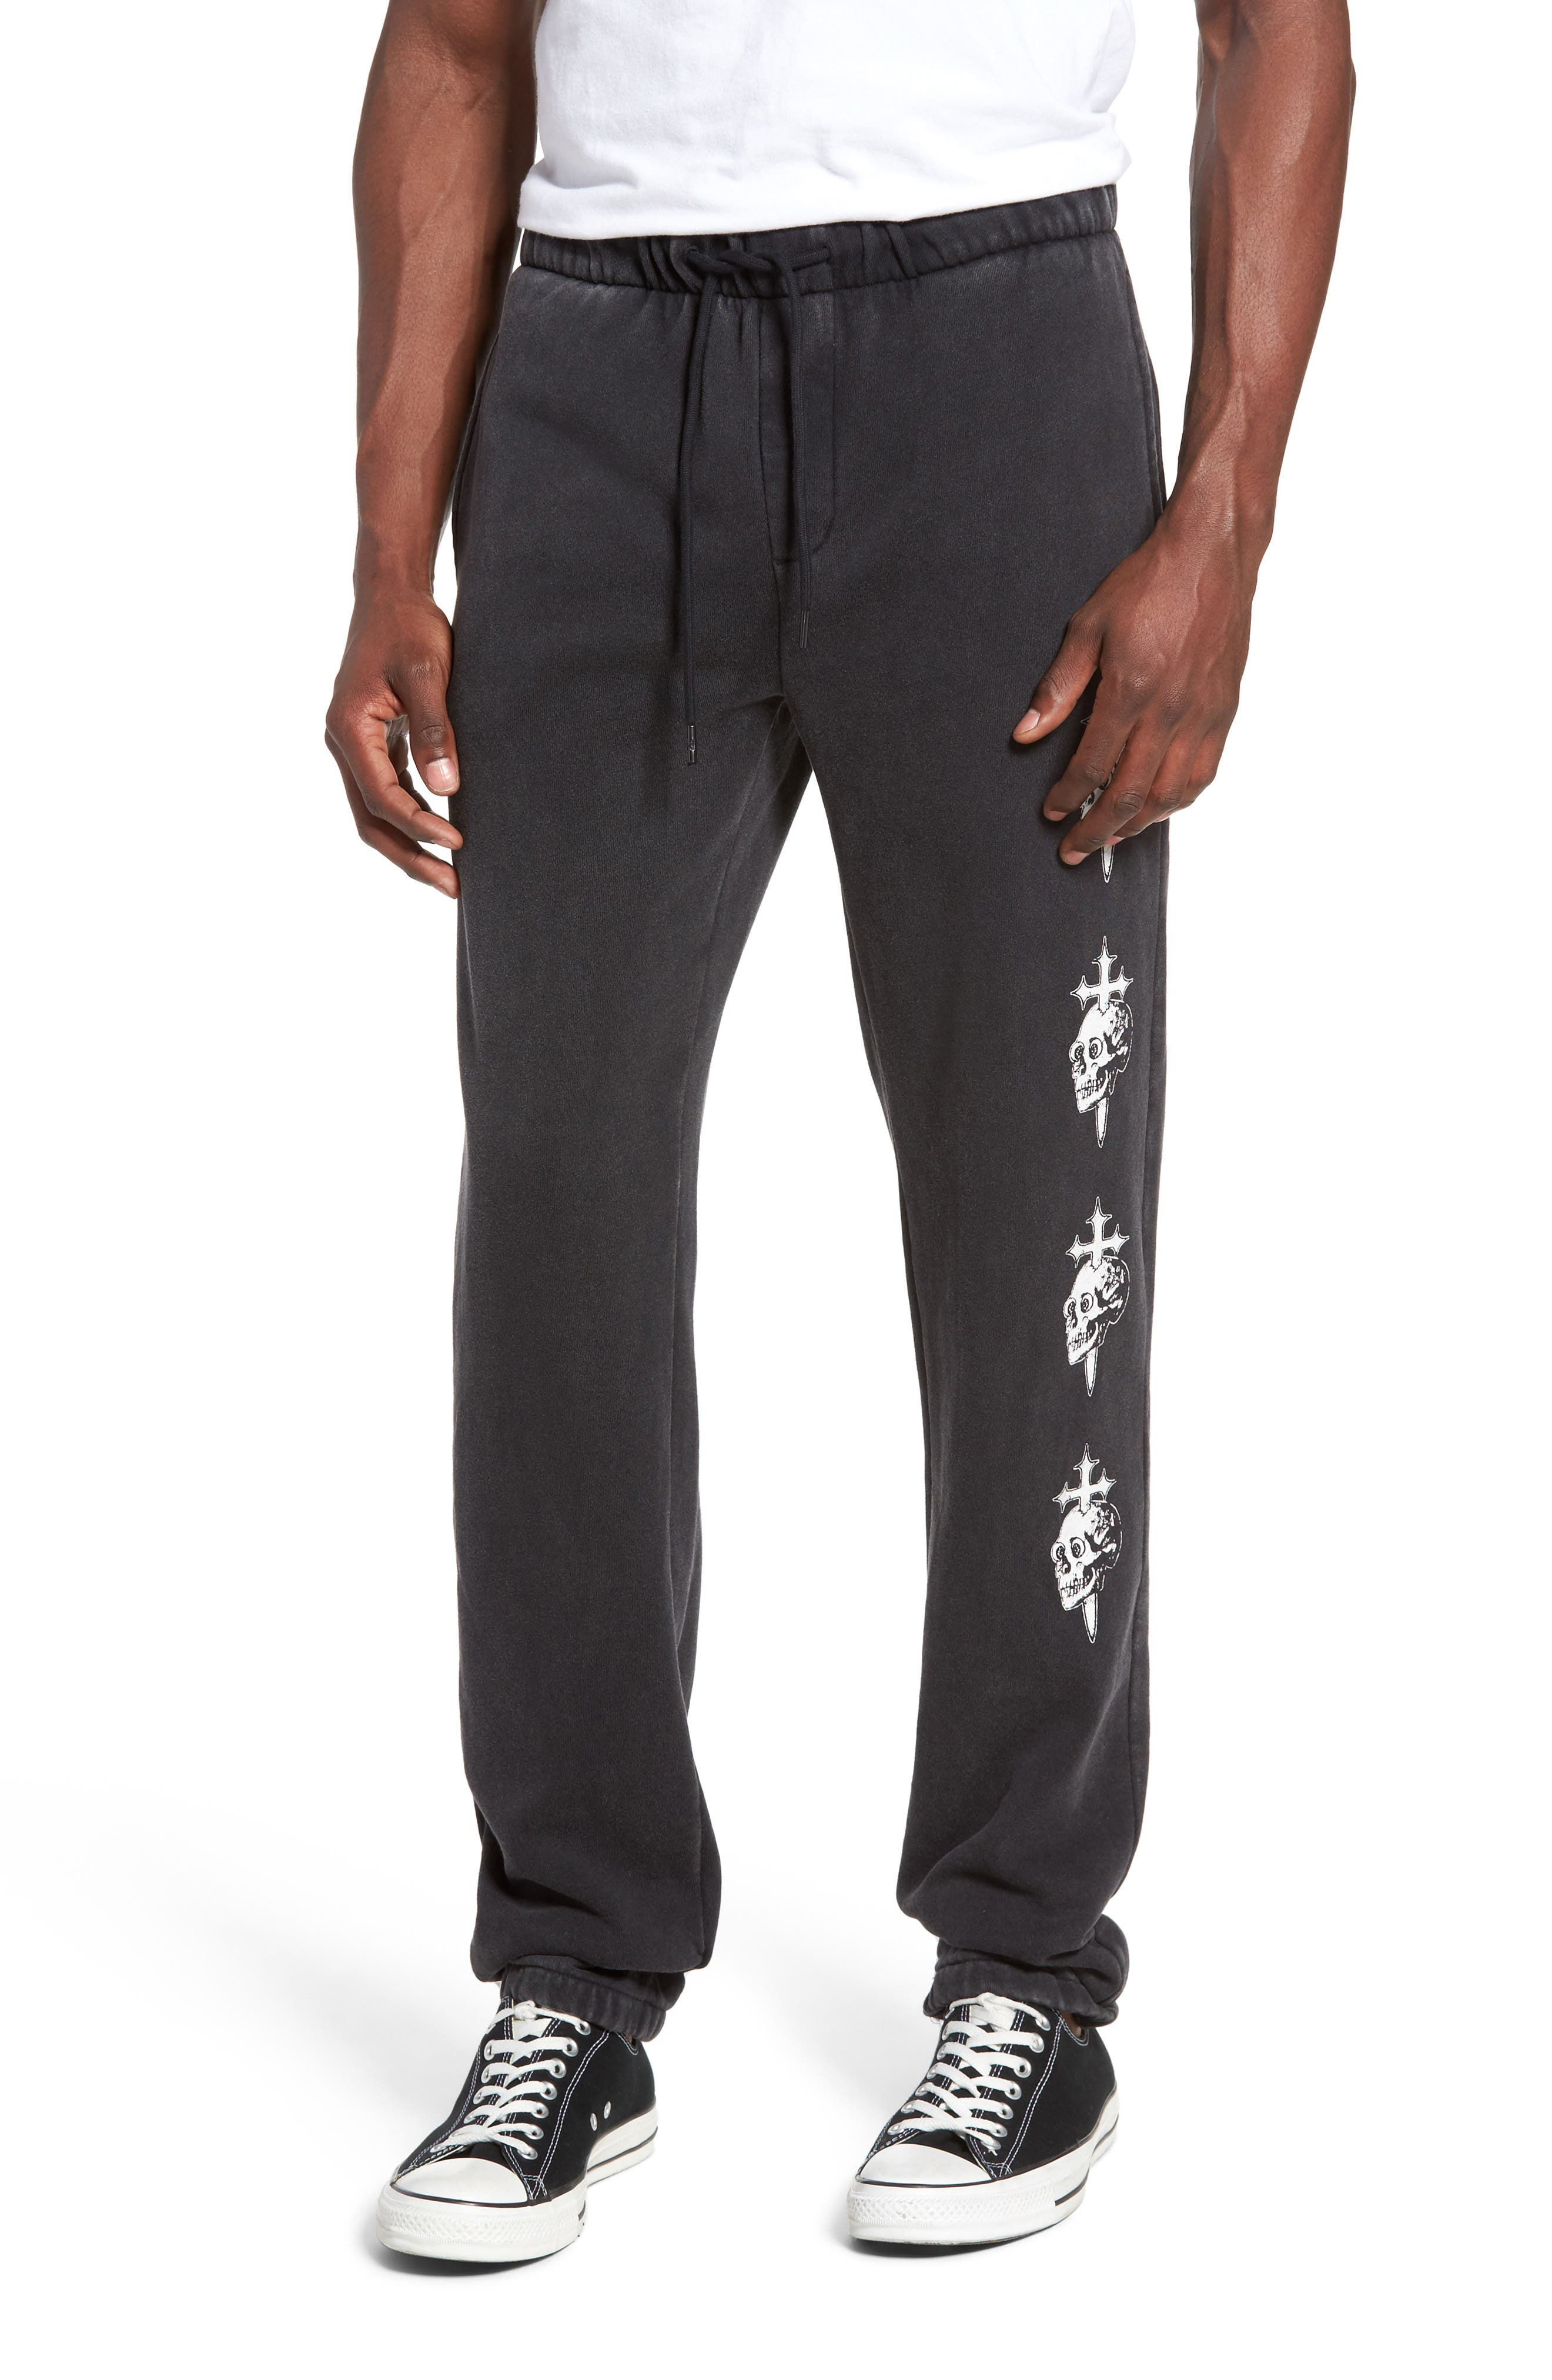 Skull Cross Print Sweatpants,                             Main thumbnail 1, color,                             002